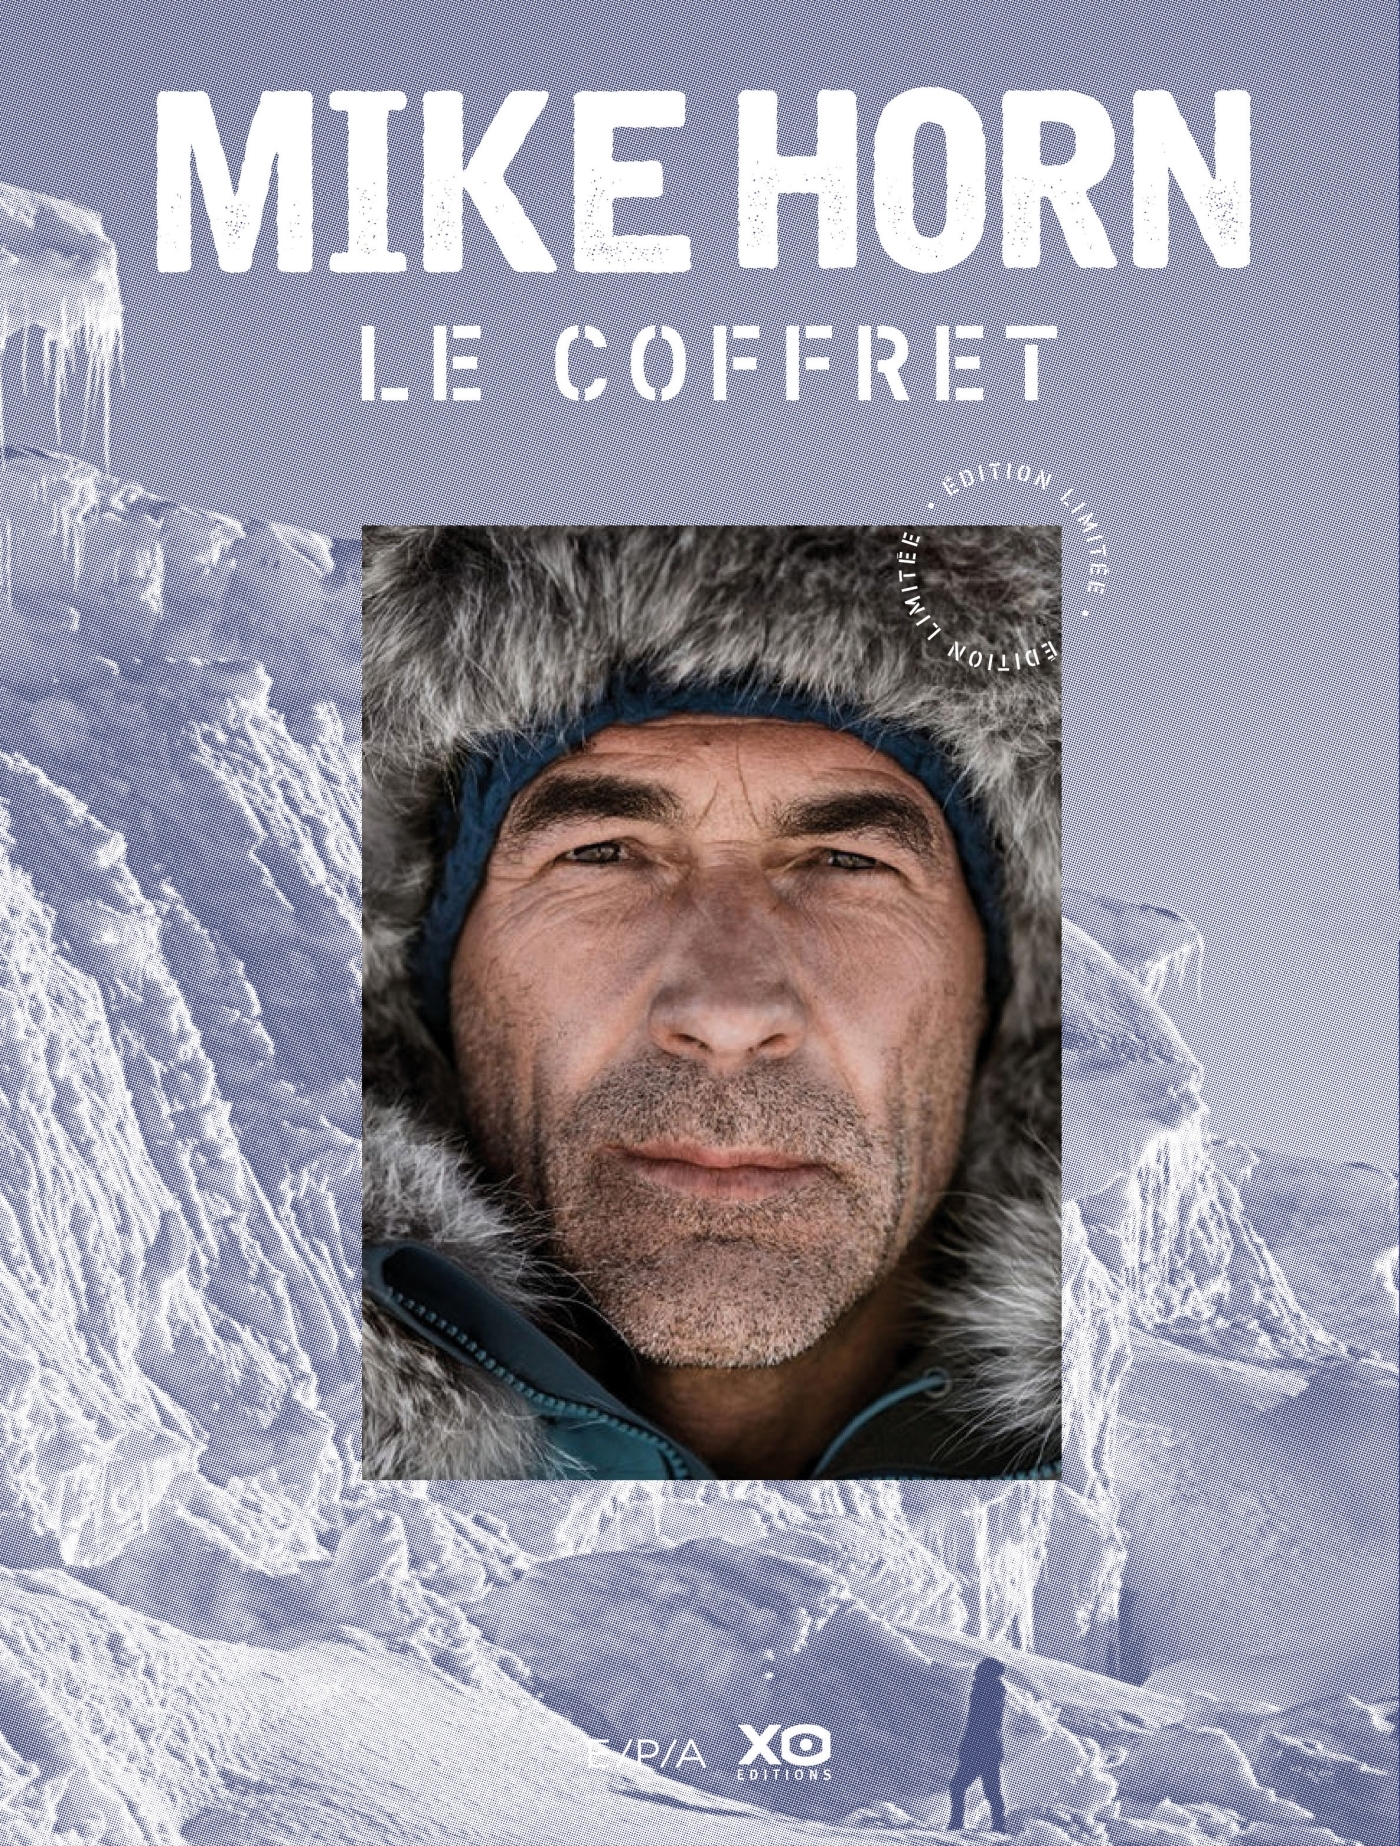 MIKE HORN - LE COFFRET - EDITION LIMITEE